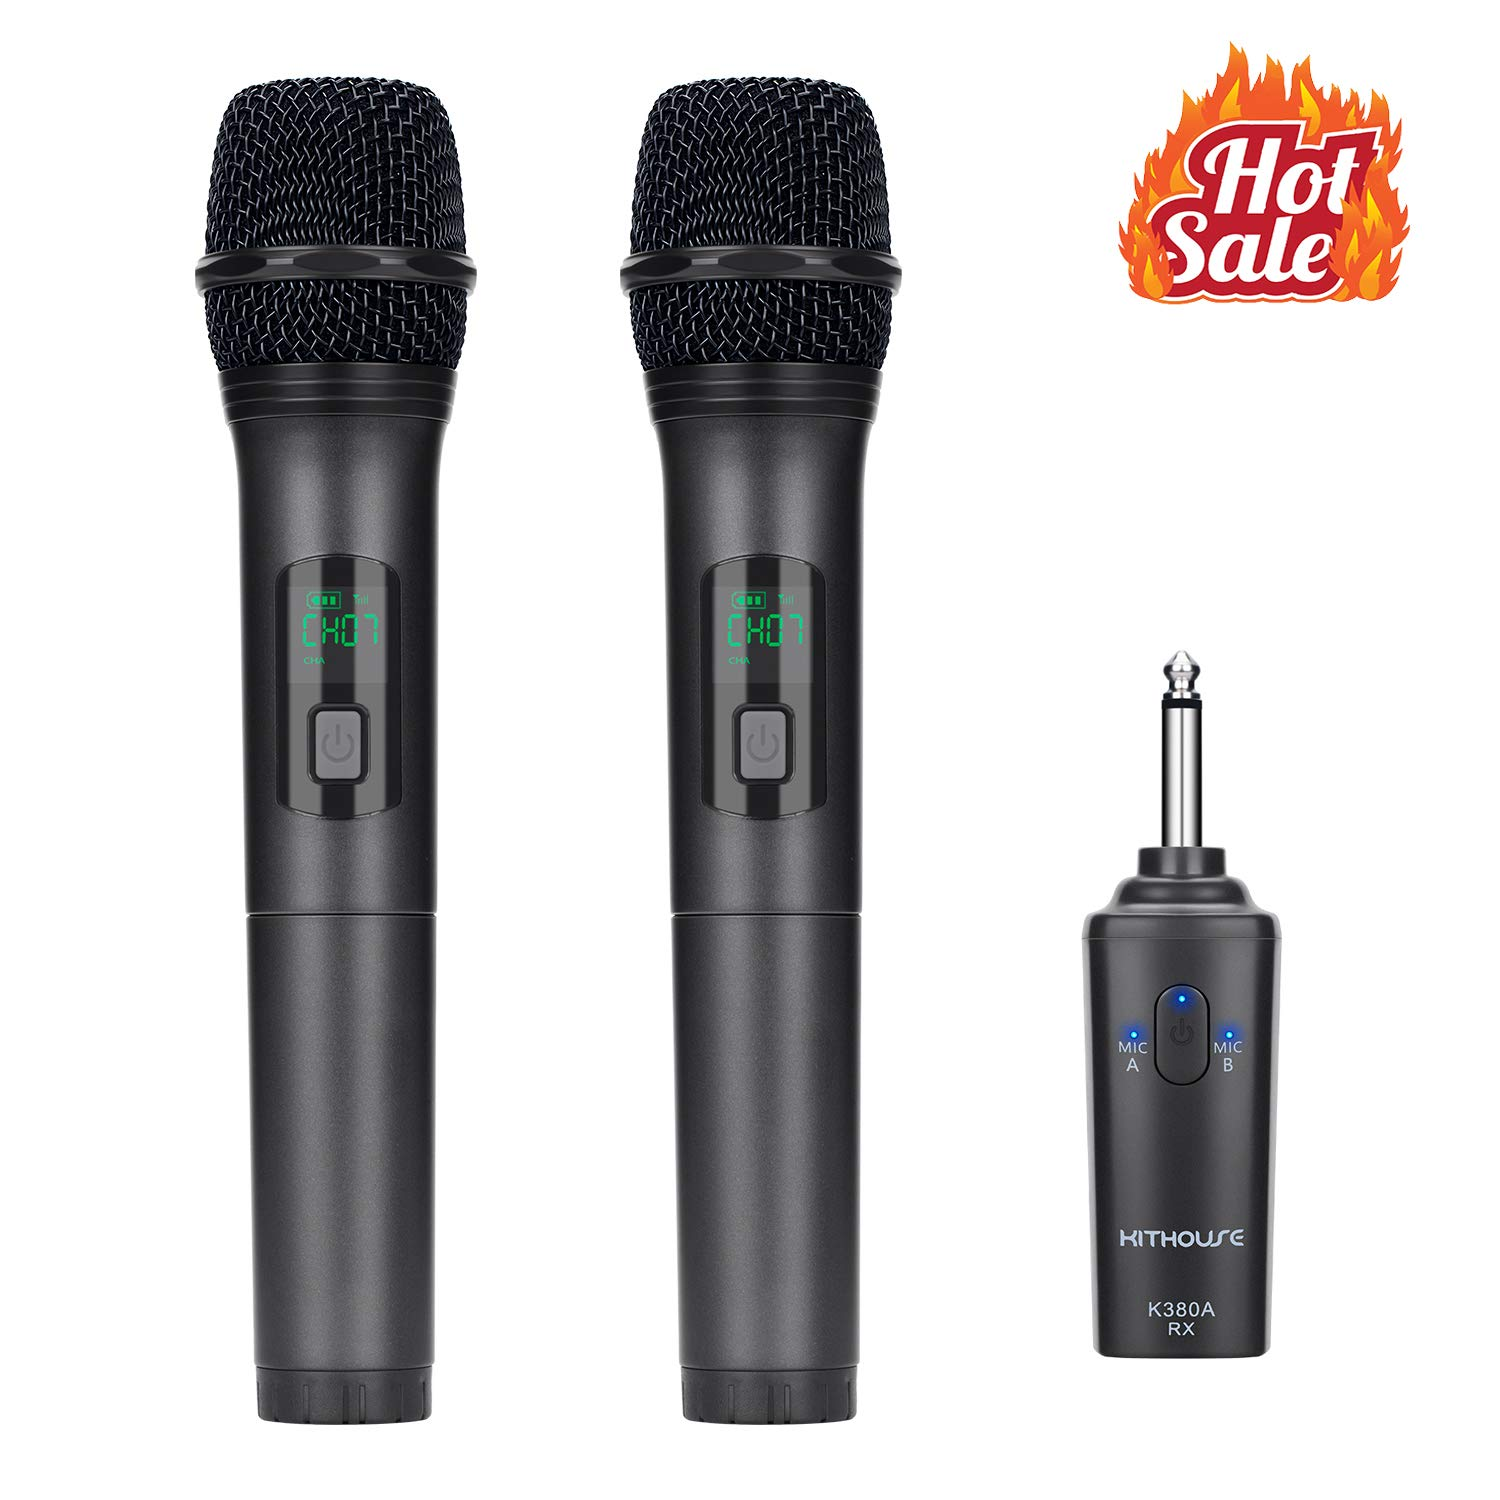 Kithouse K380A Wireless Microphone Karaoke Bluetooth Microphone Wireless With Rechargeable Receiver System - UHF Dual Handheld Dynamic Mic Set For Karaoke Singing Speech Church (Elegant Black)